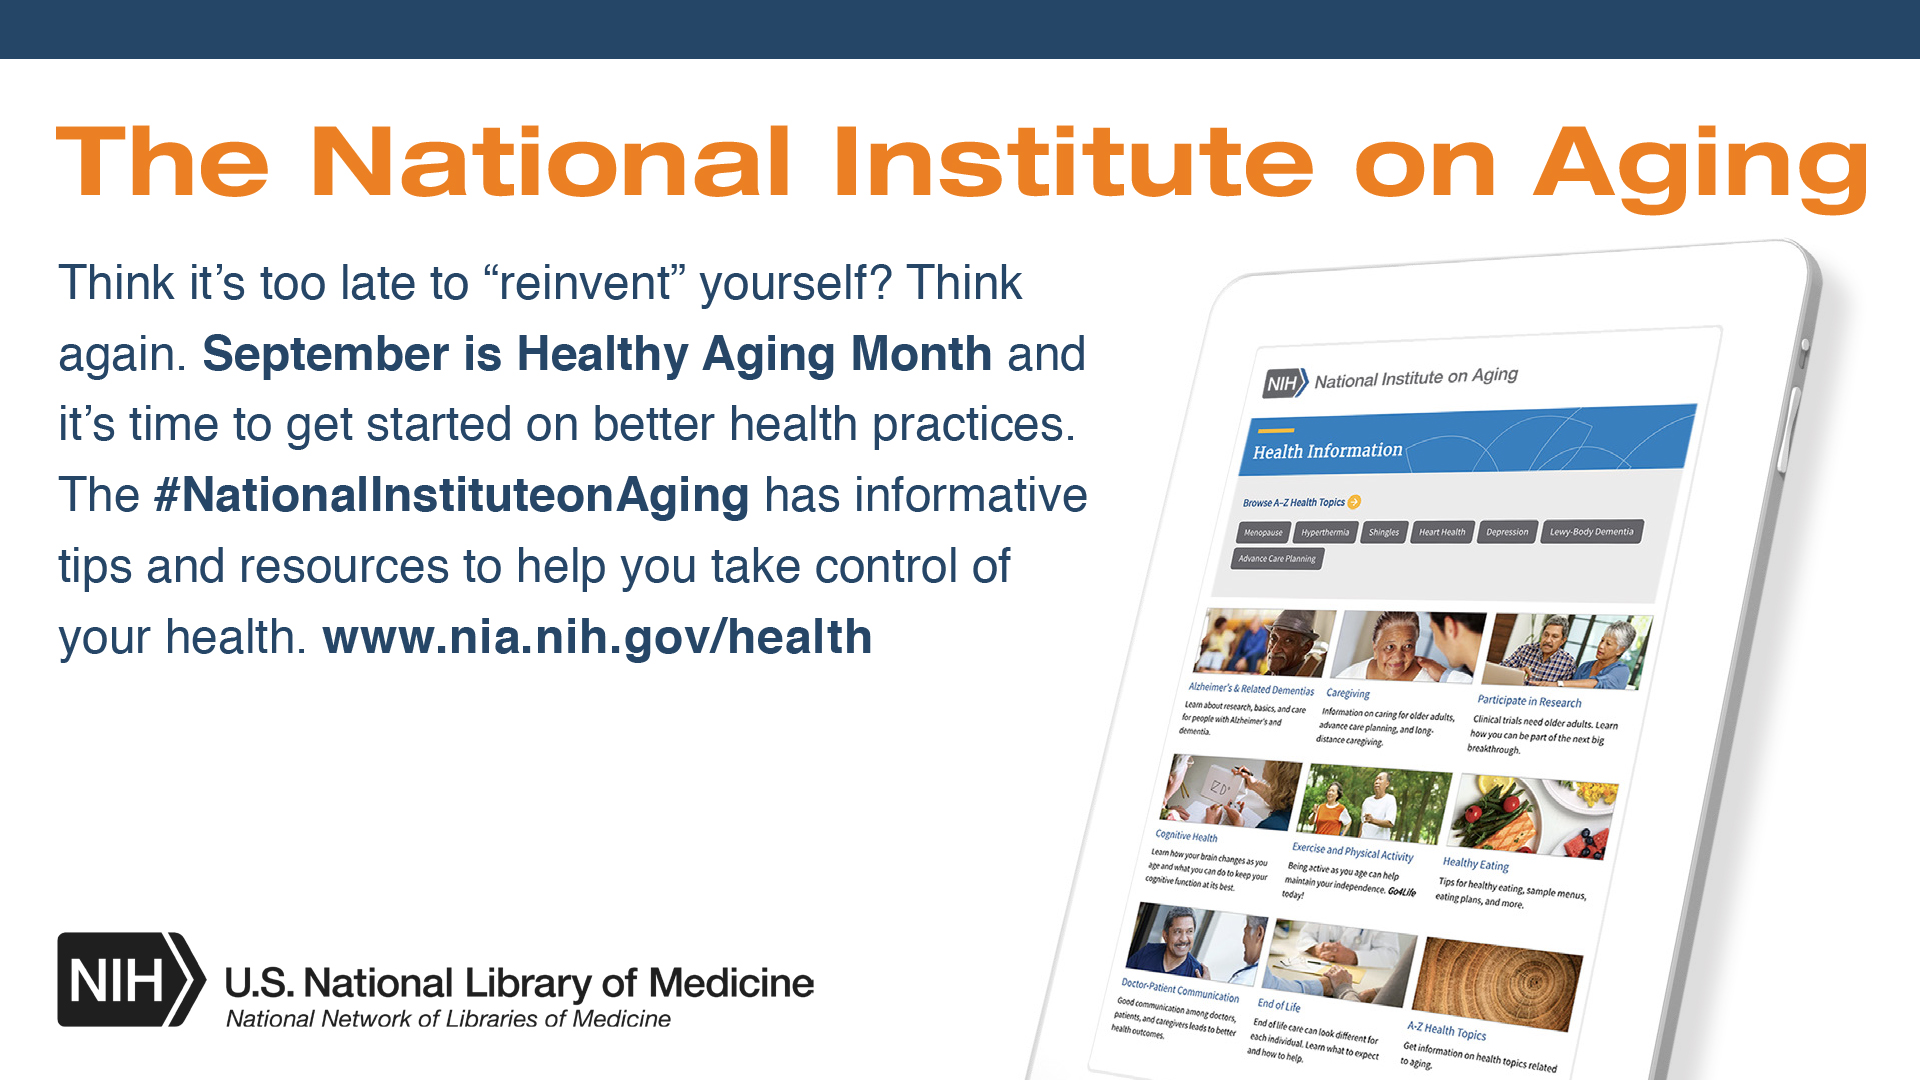 "The National Institute on Aging. Think it's too late to ""reinvent"" yourself? Think Again. September is Healthy Aging Month and it's time to get started in better health practices. The #NationalInstituteonAging has informative tips and resources to help you take control of your health. www.nia.nih.gov/health"